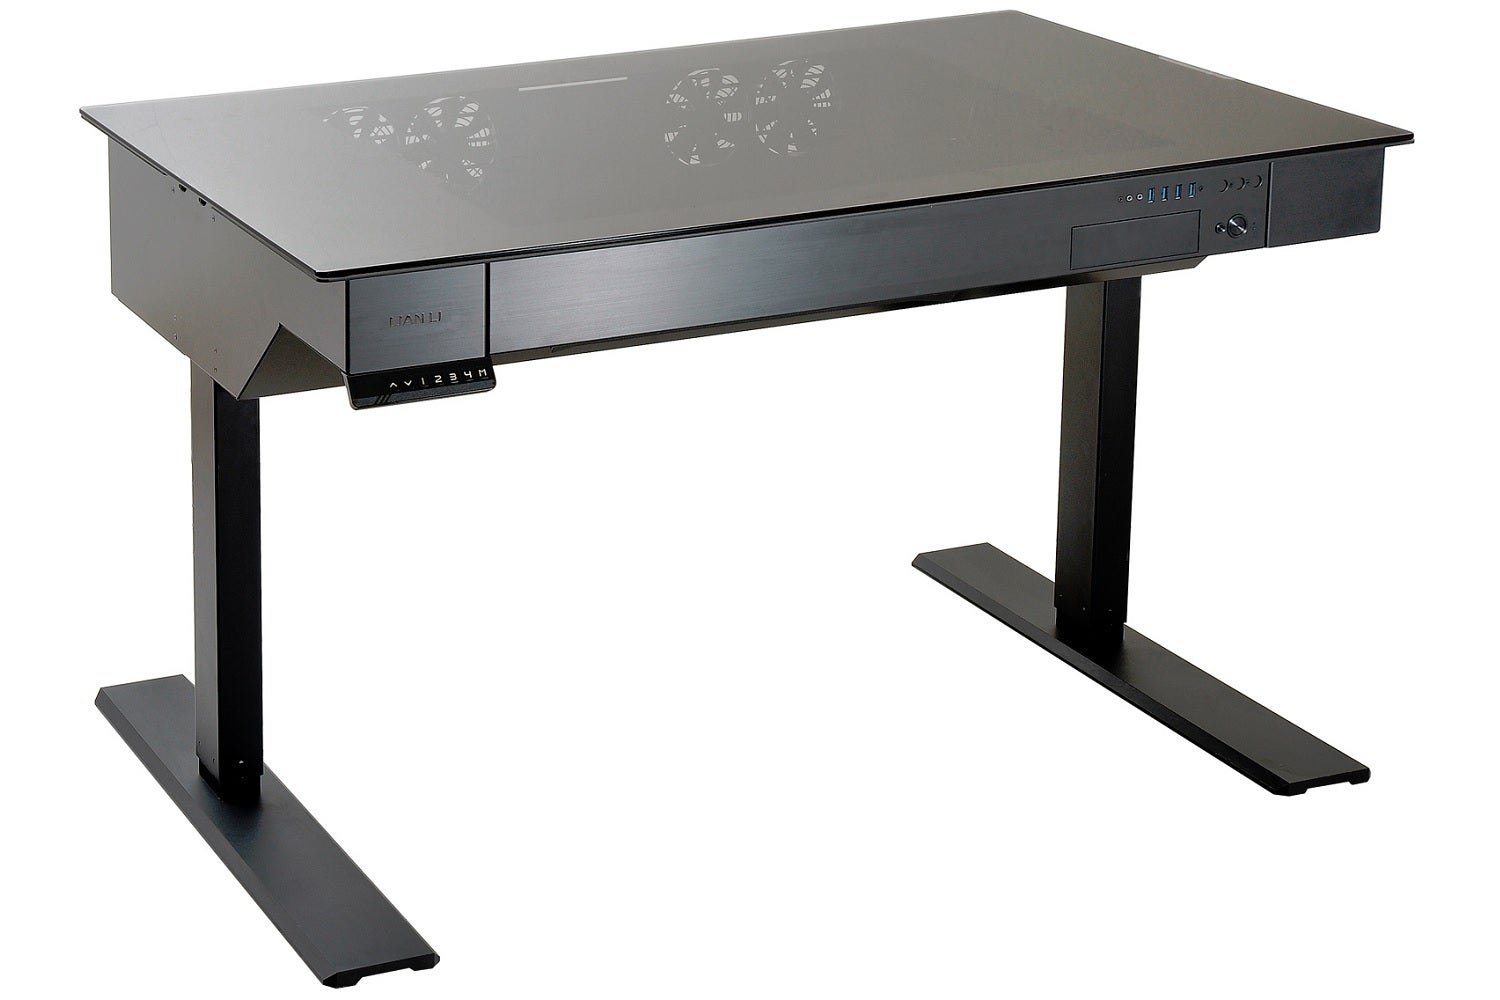 Lian Li 39 S Wild Motorized Standing Desk Doubles As A Case